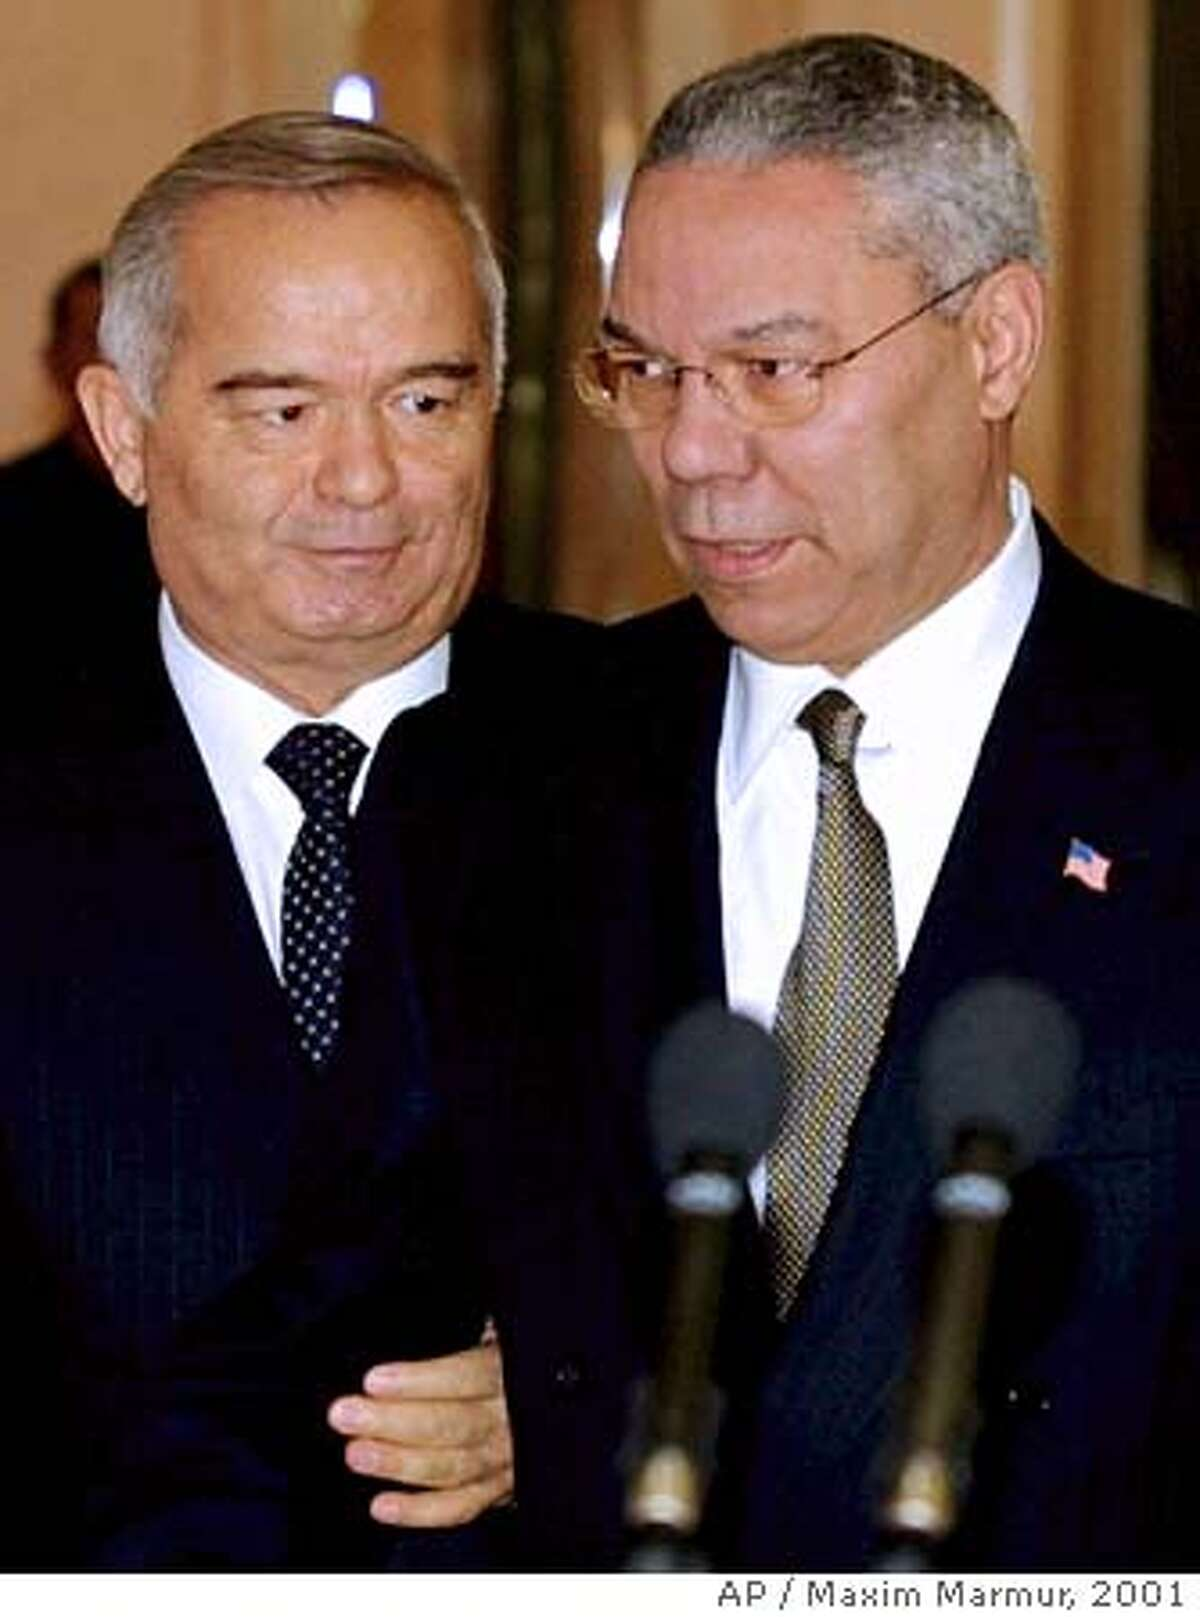 Secretary of State Colin Powell, right, and Uzbek President Islam Karimov speak at a press conference after their meeting in the Uzbek capital Tashkent Saturday, Dec. 8, 2001. (AP Photo/Maxim Marmur, Pool) Ran on: 05-01-2005 Former Secretary of State Colin Powell (right) met with Uzbek President Islam Karimov in Tashkent on Dec. 8, 2001.